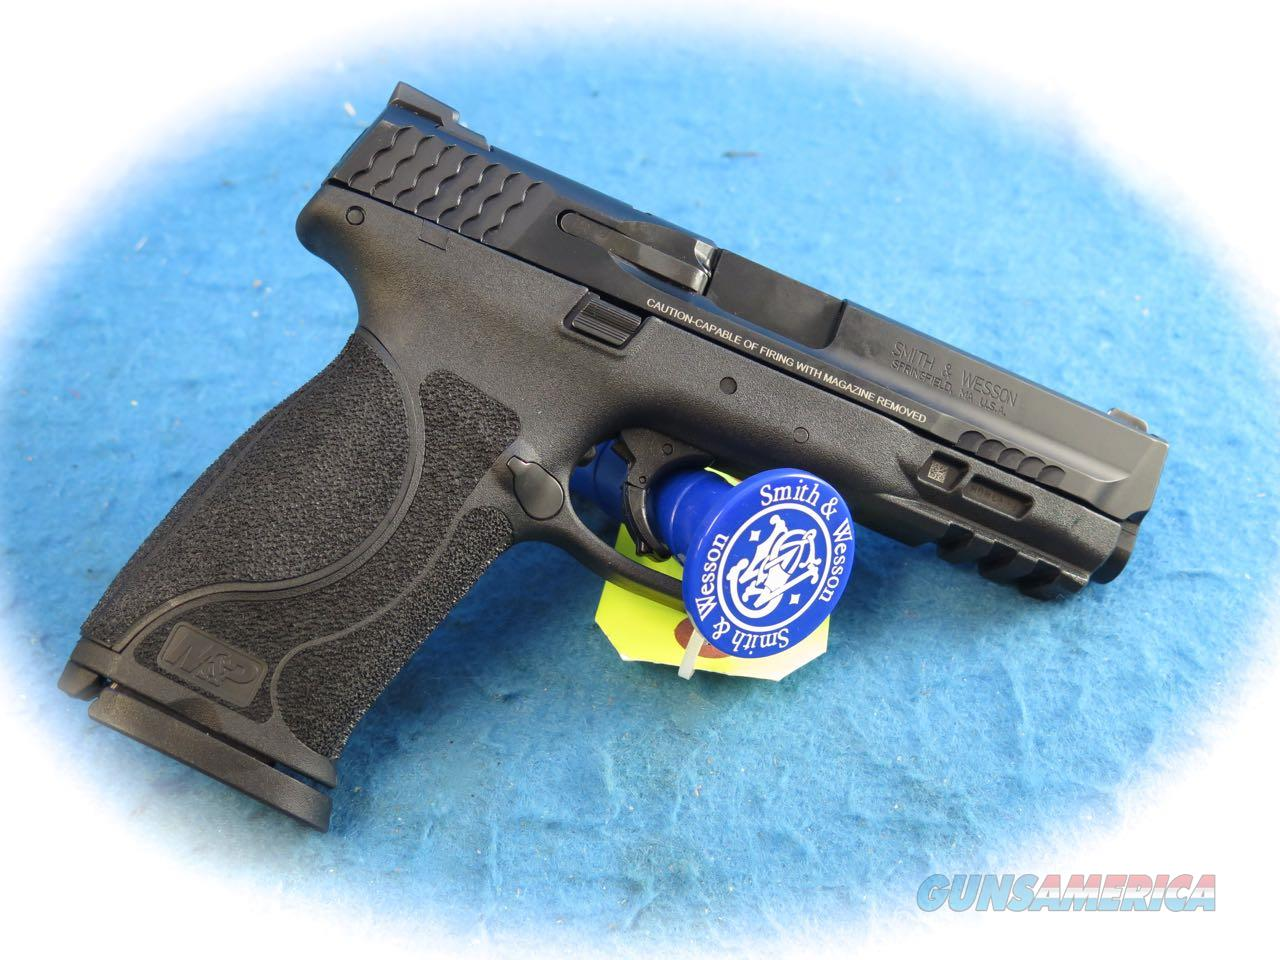 Smith & Wesson M&P9 2.0 9mm Semi Auto Pistol Model 11521 **New**  Guns > Pistols > Smith & Wesson Pistols - Autos > Polymer Frame